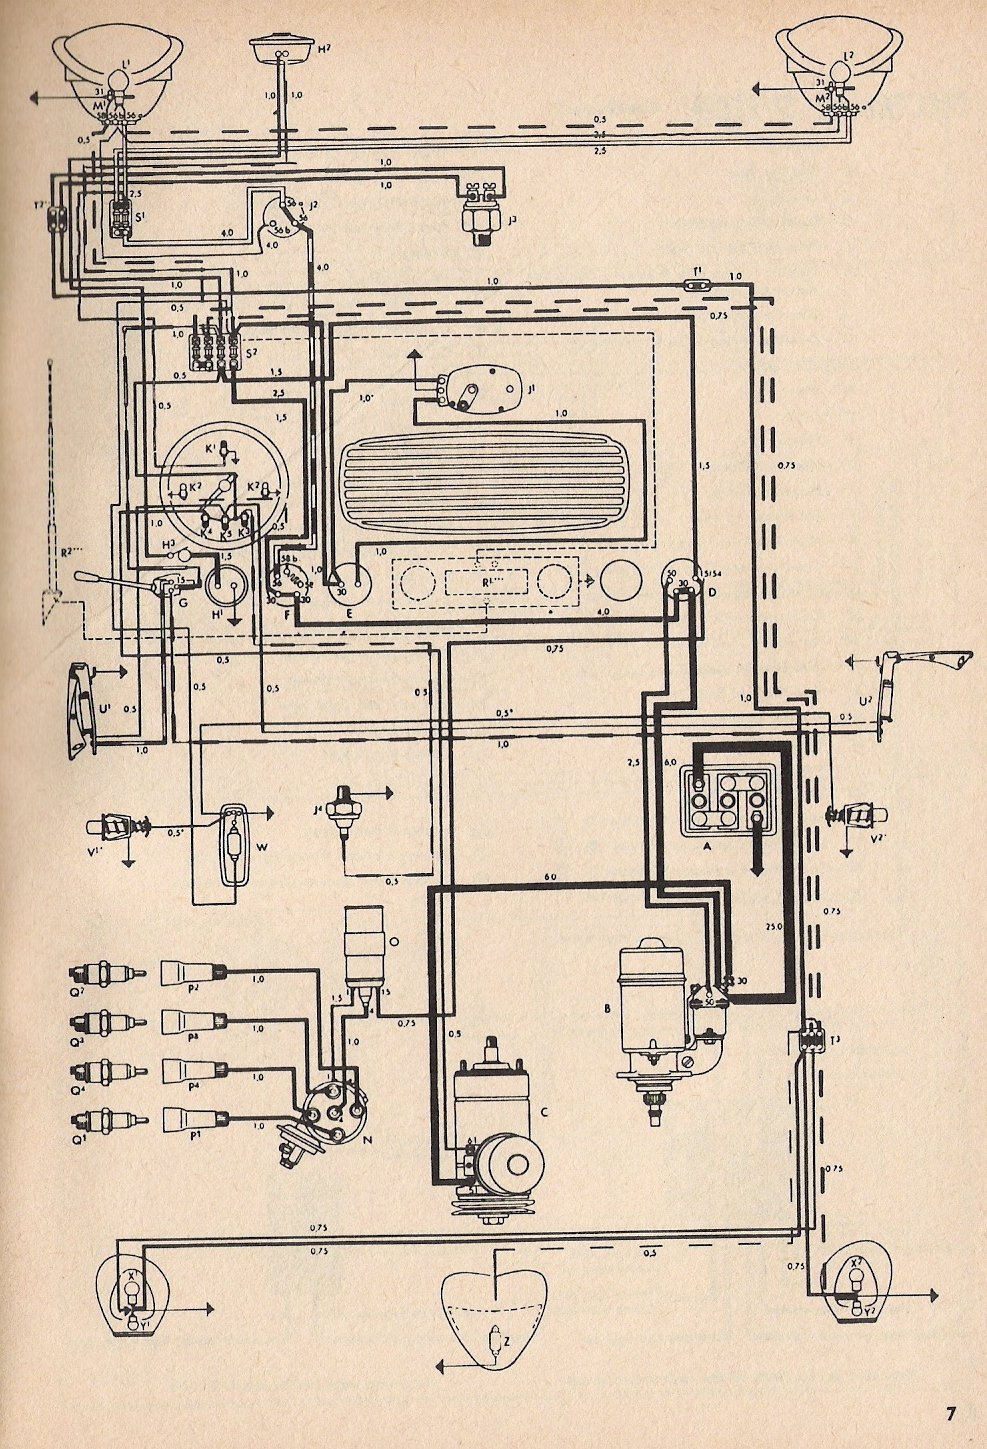 bug_54 thesamba com type 1 wiring diagrams 1971 vw bus wiring diagram at crackthecode.co